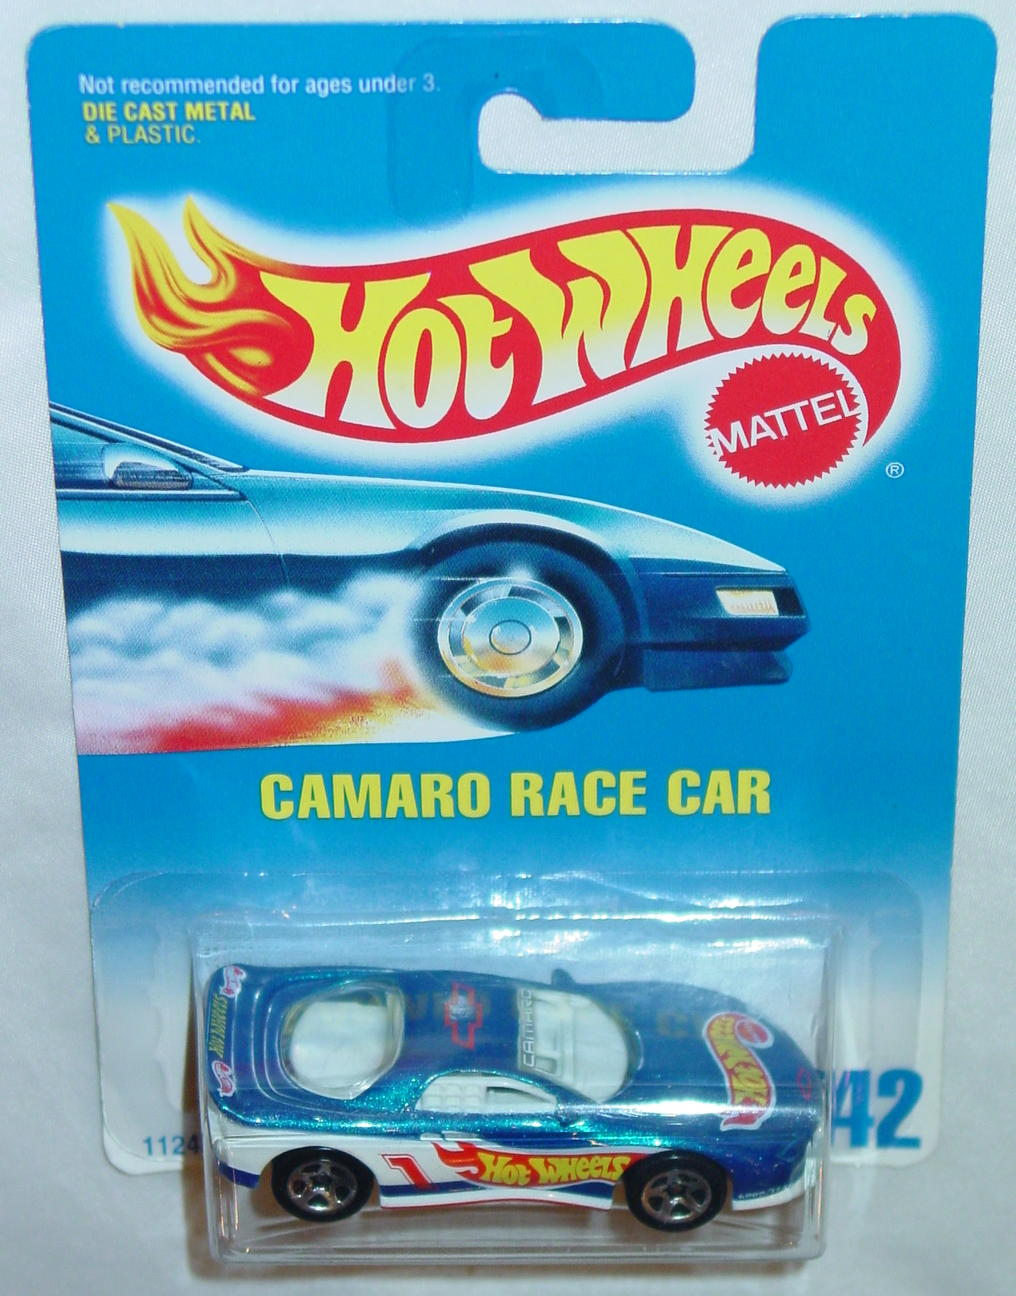 Blackwalls 11243 - 242 Camaro Race Car met blue SP5